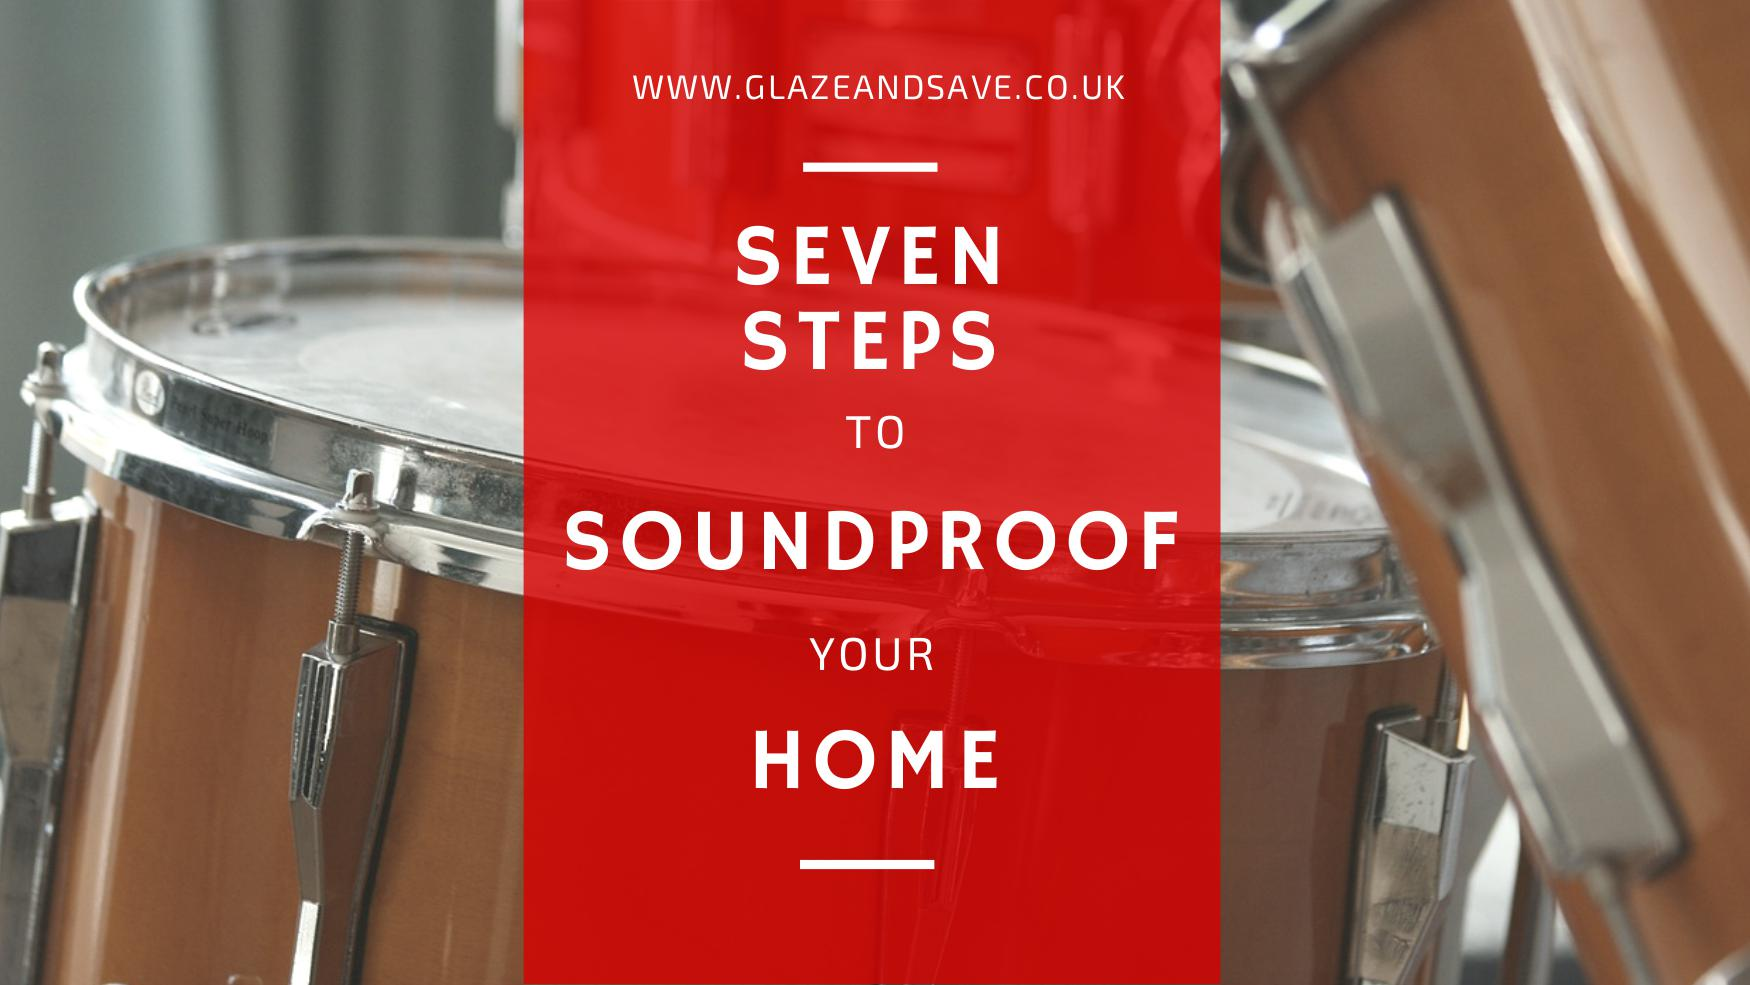 Seven steps to sound proof your home by Glaze & Save bespoke magnetic secondary glazing and draught proofing installers based in Perth, Scotland. Create a quieter and more energy efficient home.